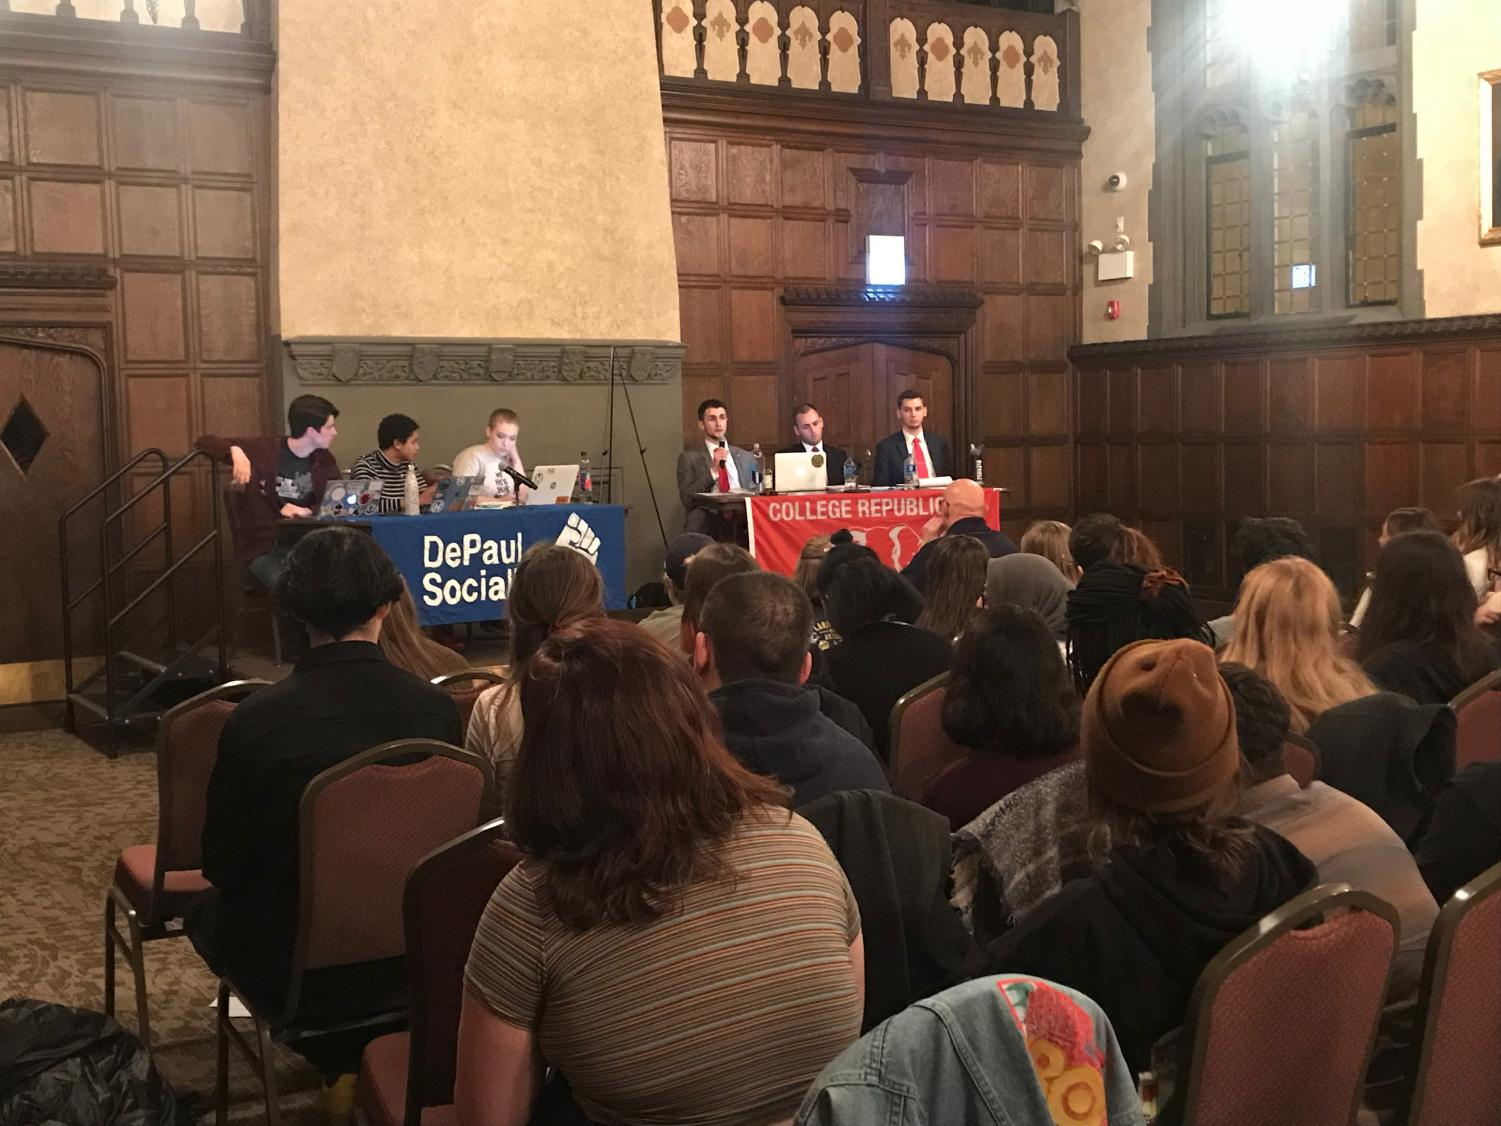 The DePaul Socialists challenged the DePaul College Republicans to a public debate after controversial author Charles Murray spoke on campus in November 2017. (Amber Colón | The Depaulia)